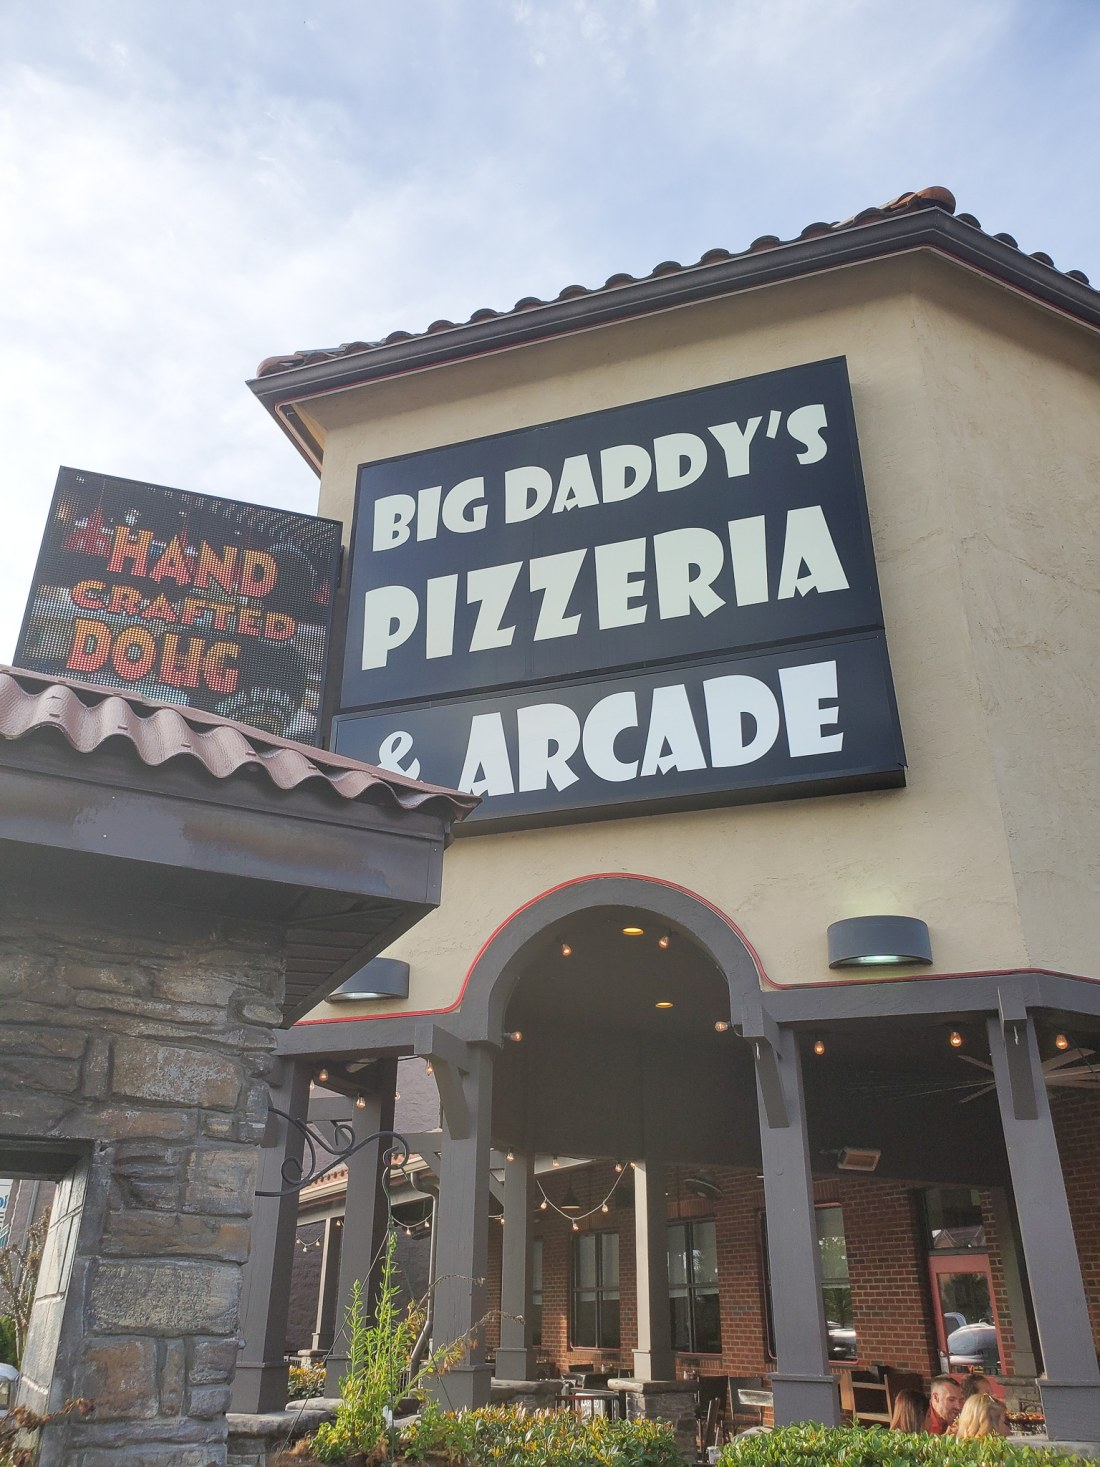 Big Daddy's Pizzeria Pigeon Forge, TN. This is not your average pizza pie! At the heart of Big Daddy's is a 550 degree, wood-fired flame inside of a one-of-a-kind brick oven. Read all about why this freshly made pizza is my families go to pizza joint in Pigeon Forge, TN.